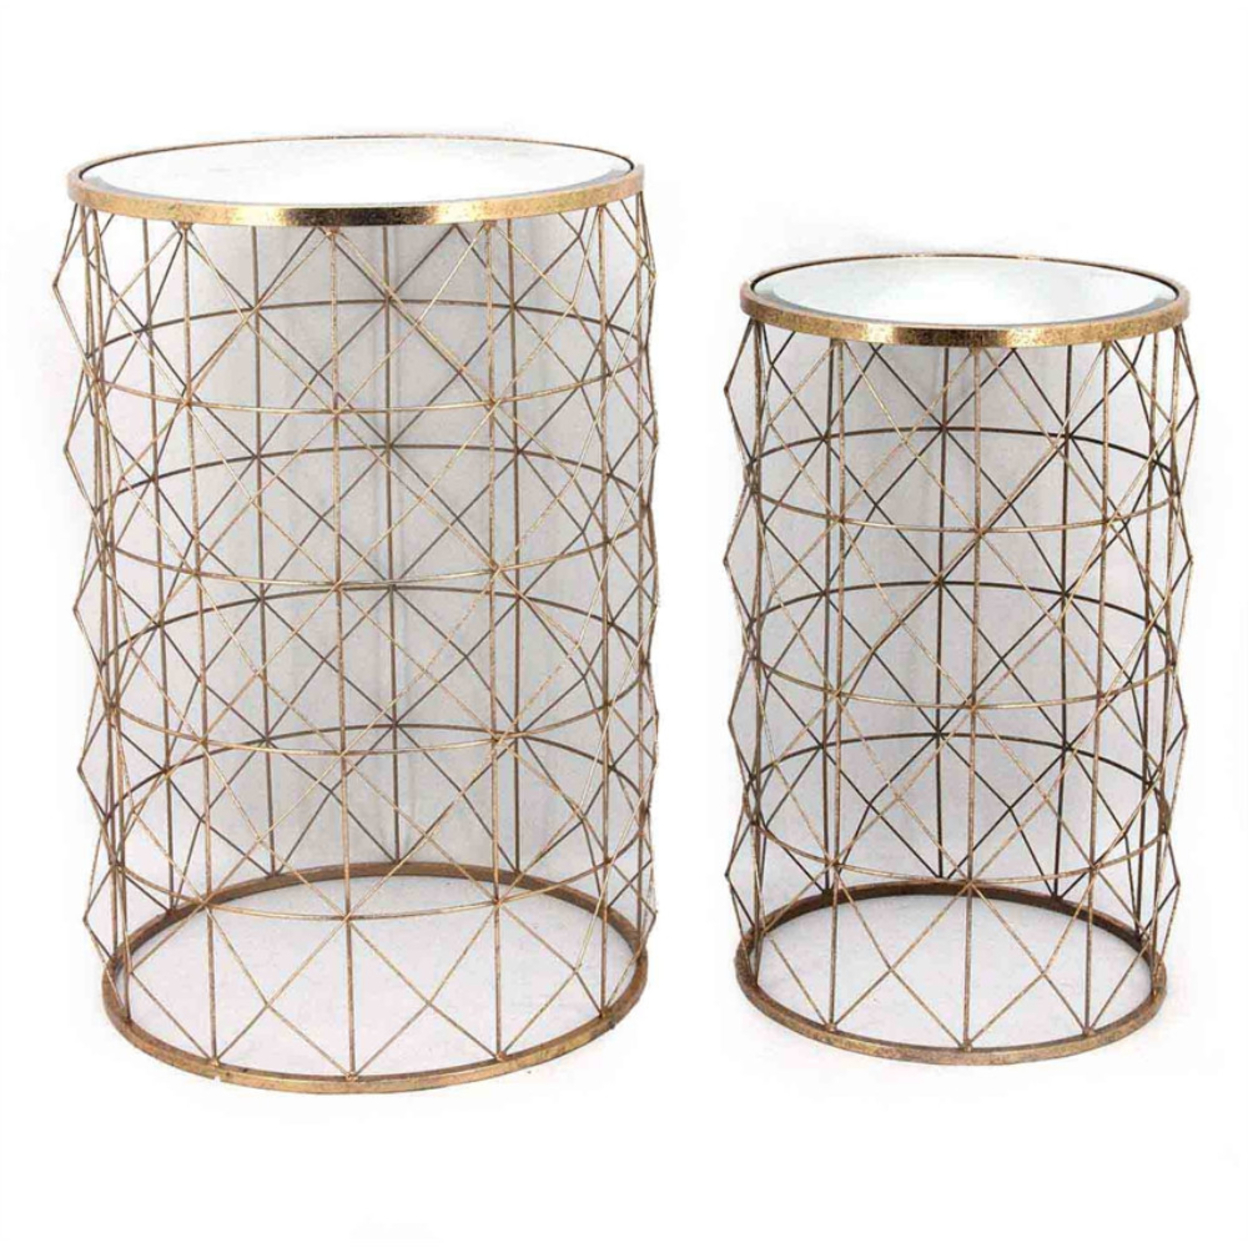 Flashy Figured Set of 2 Metal Accent Tables, Gold 5a324f2c2a00e4342719d148